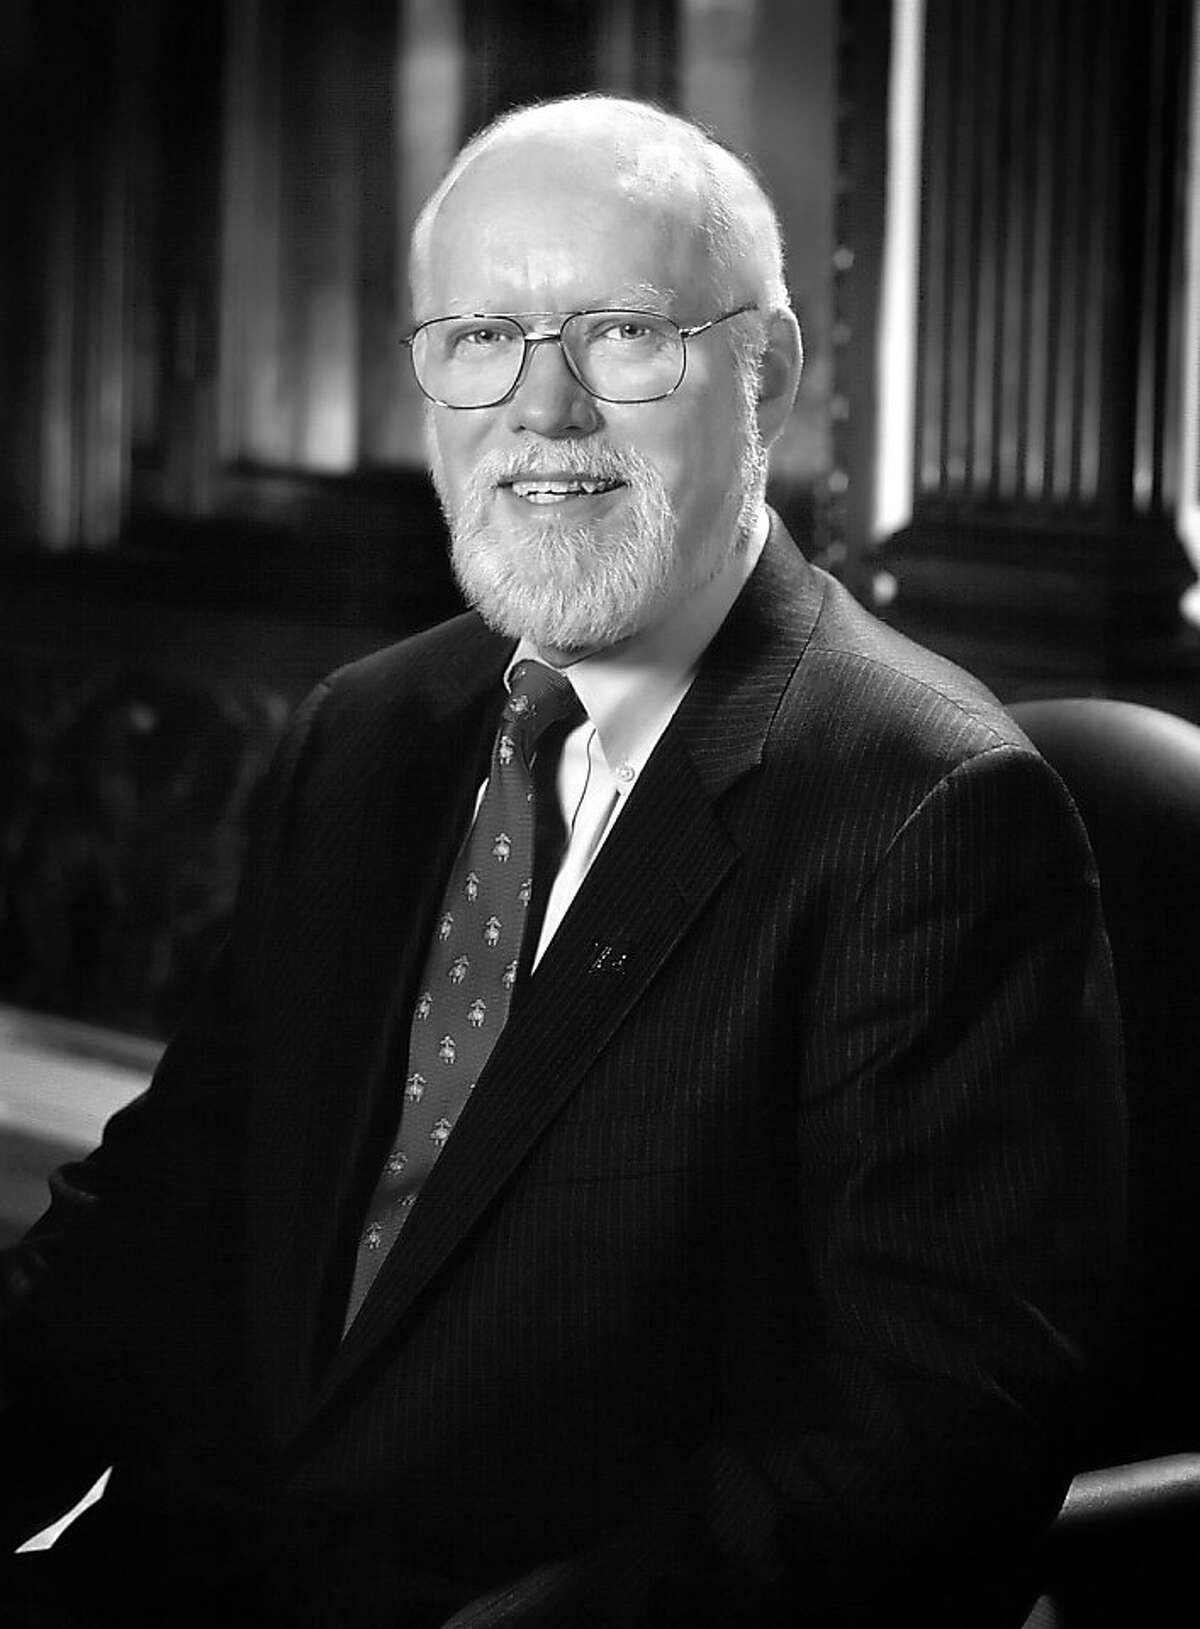 Stephen M. Curtis, 68, is the former president of Community College of Philadelphia